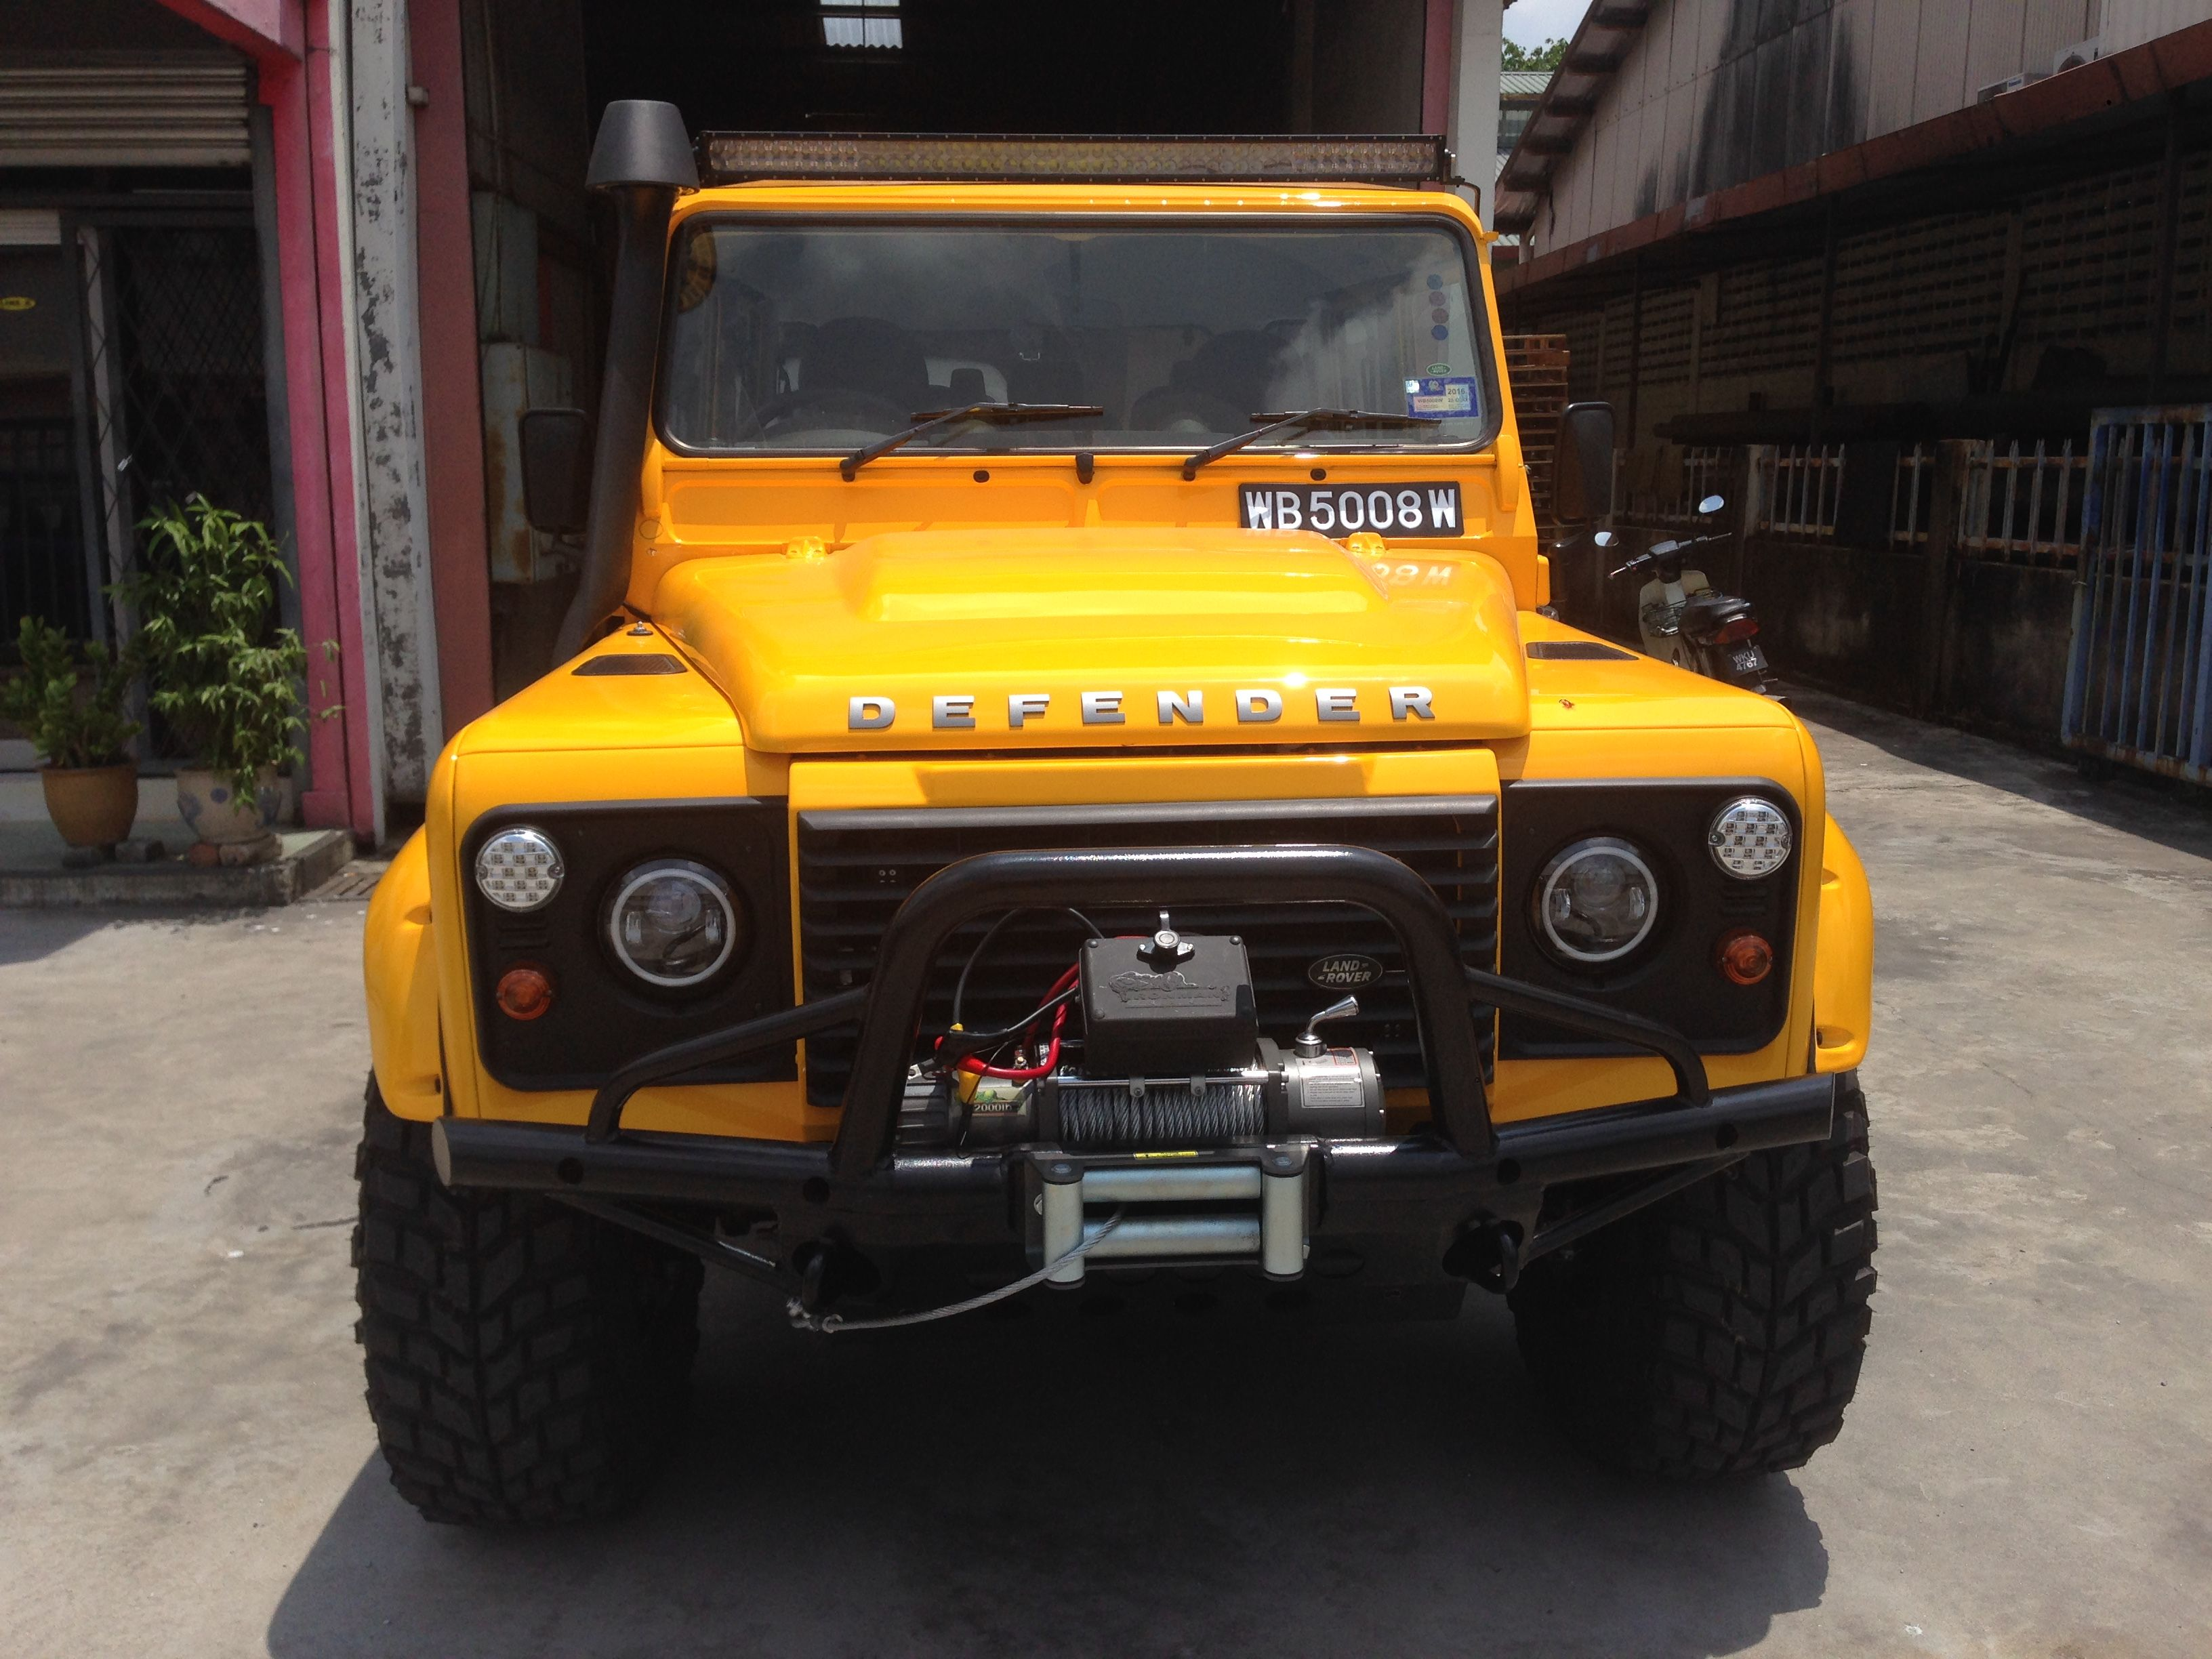 land s for refurbished defenders vehicle sales sale rover harford landrover photo